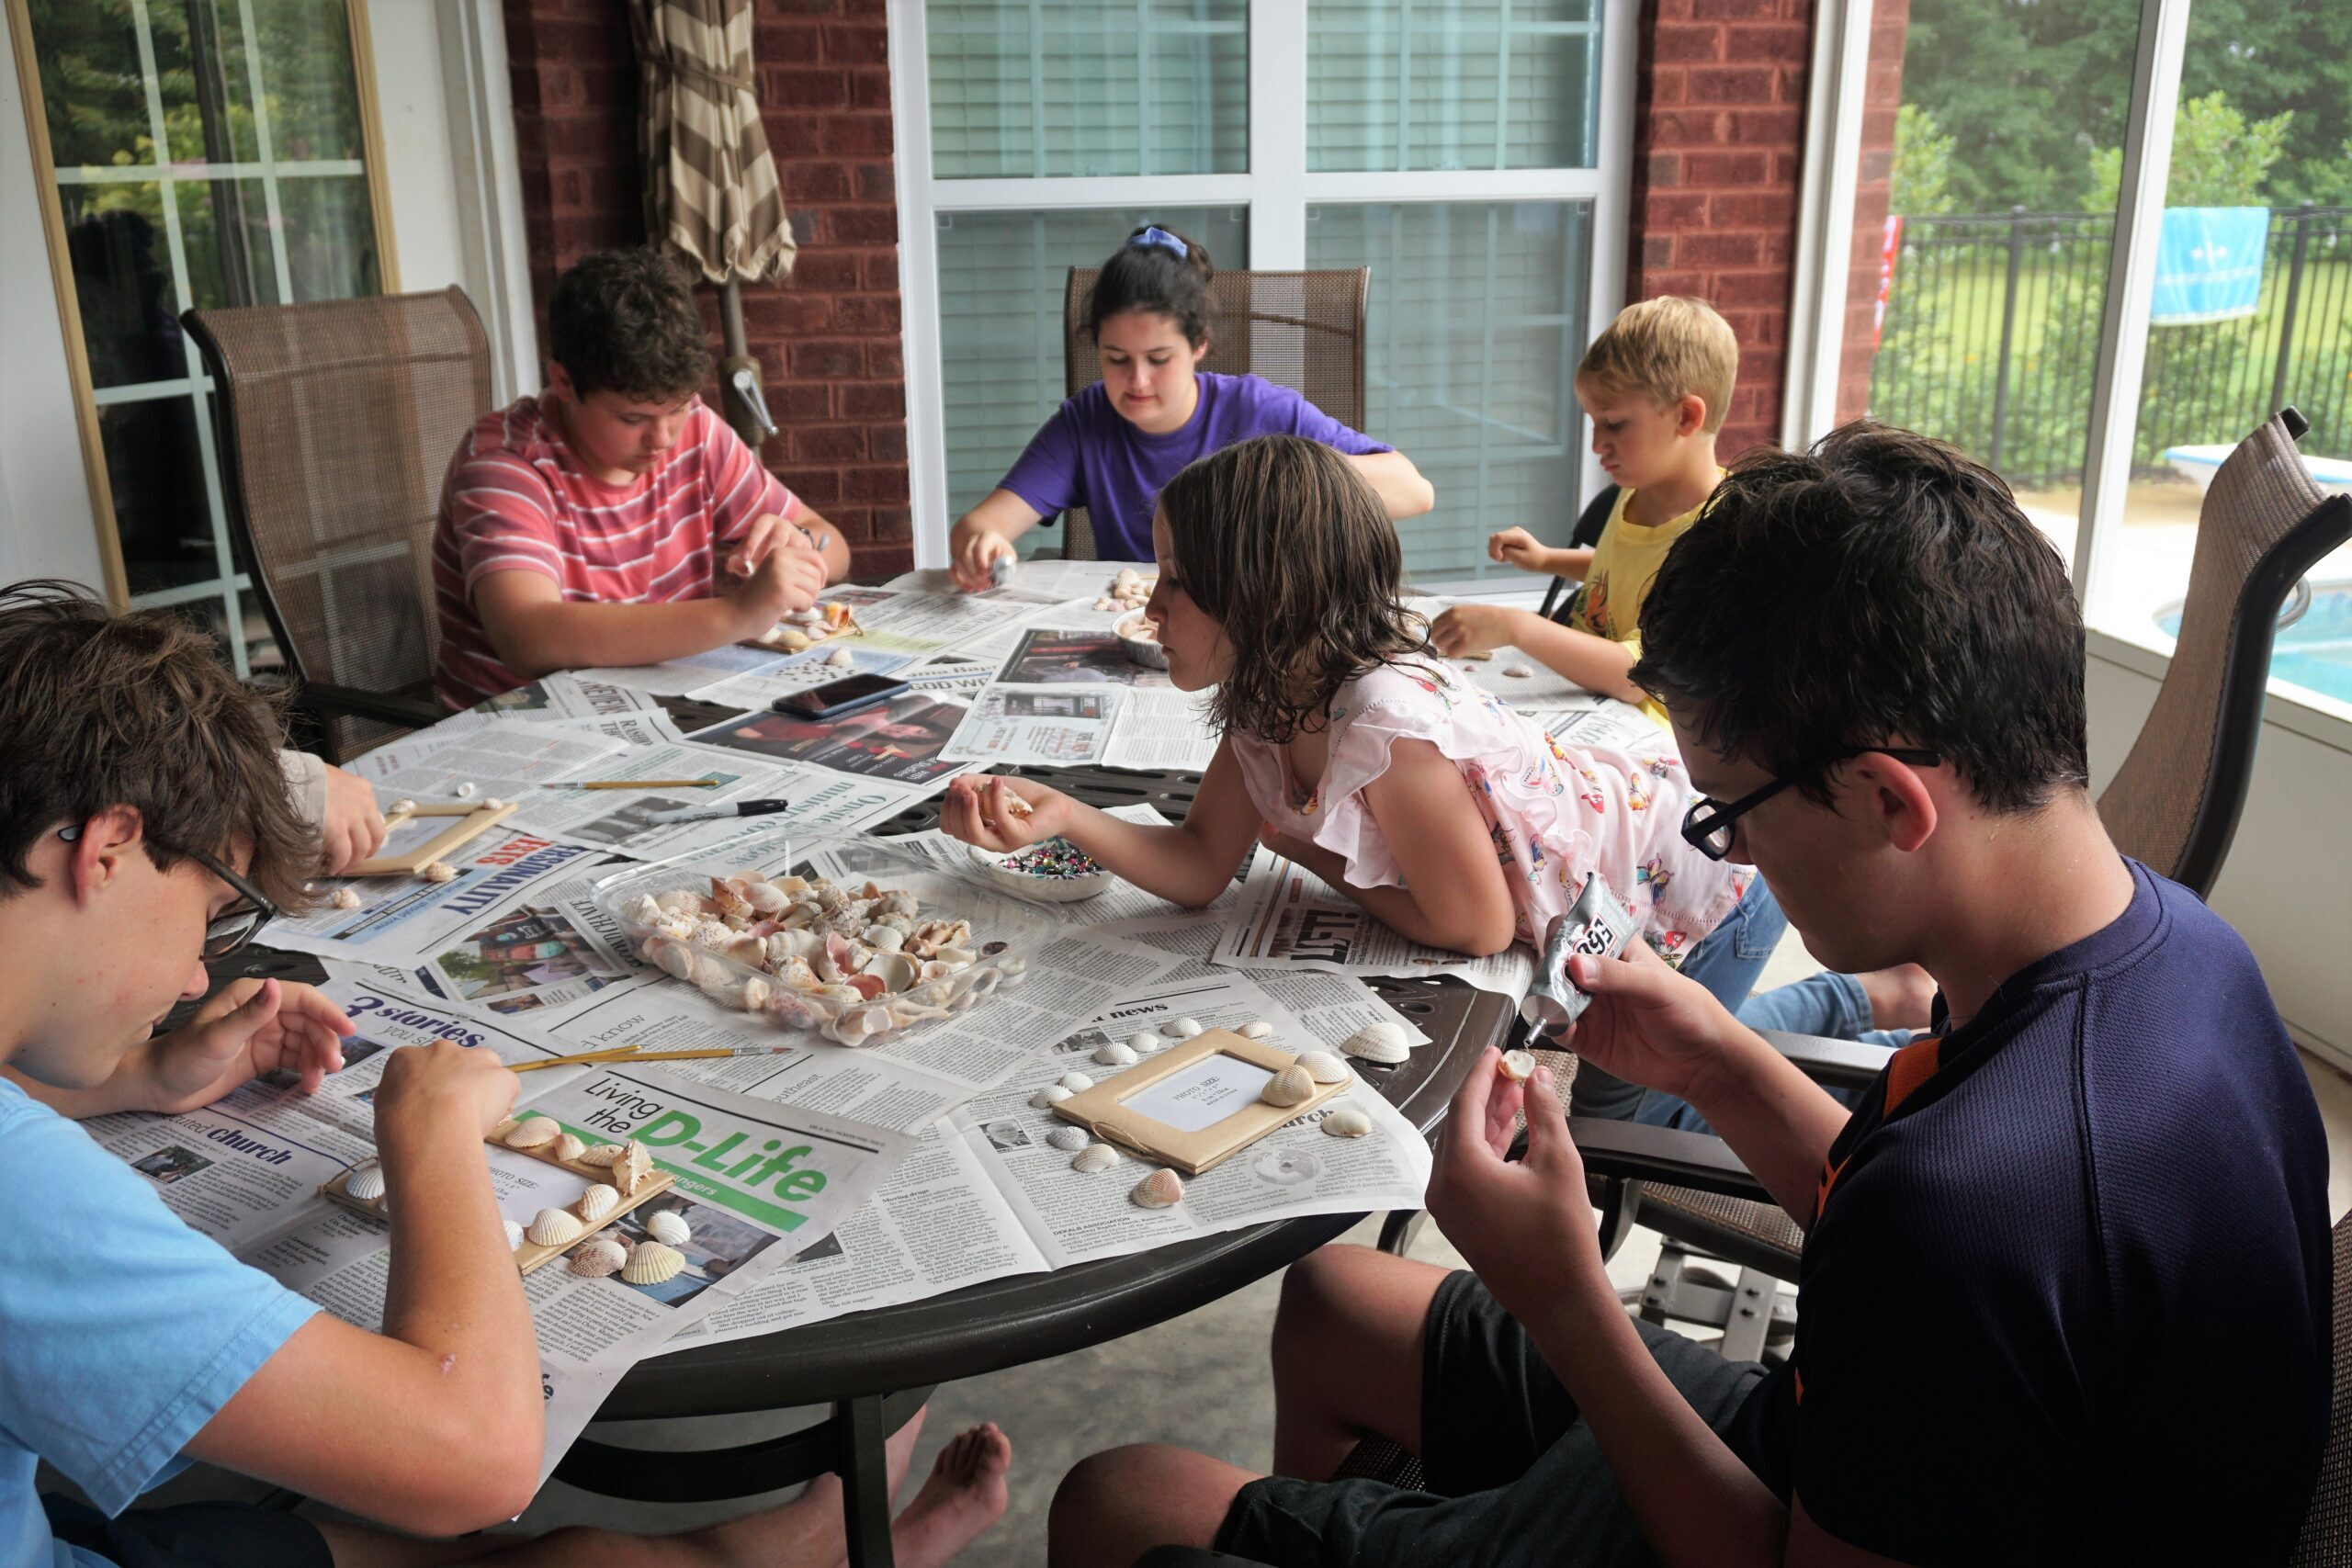 Cousin camp ideaa- Cousins doing a craft project with glue and shells.